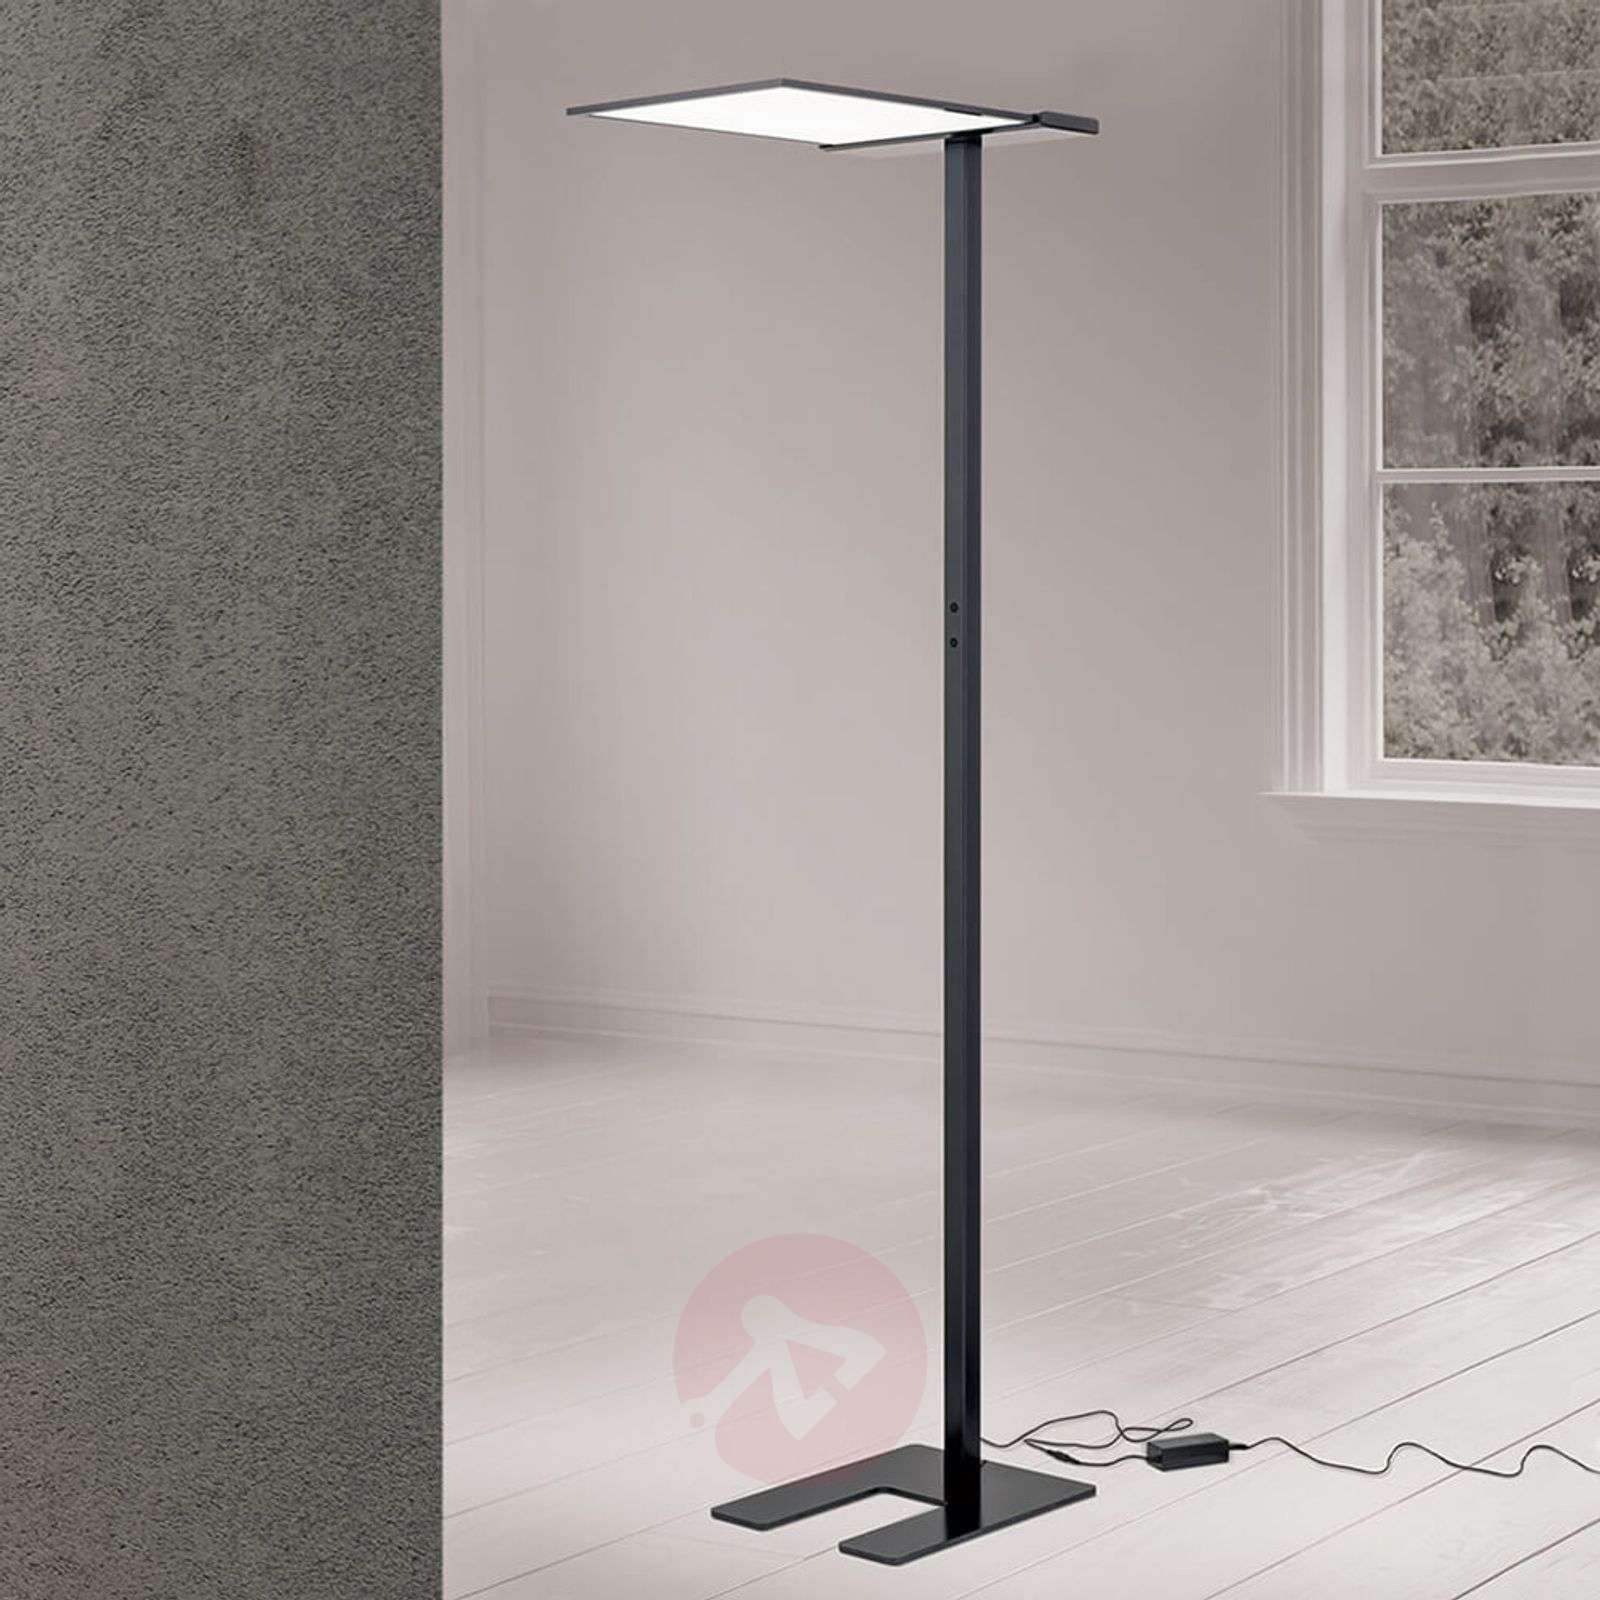 Bright LED Office Floor Lamp Primo, 4 Level Dimmer | Lights.co.uk